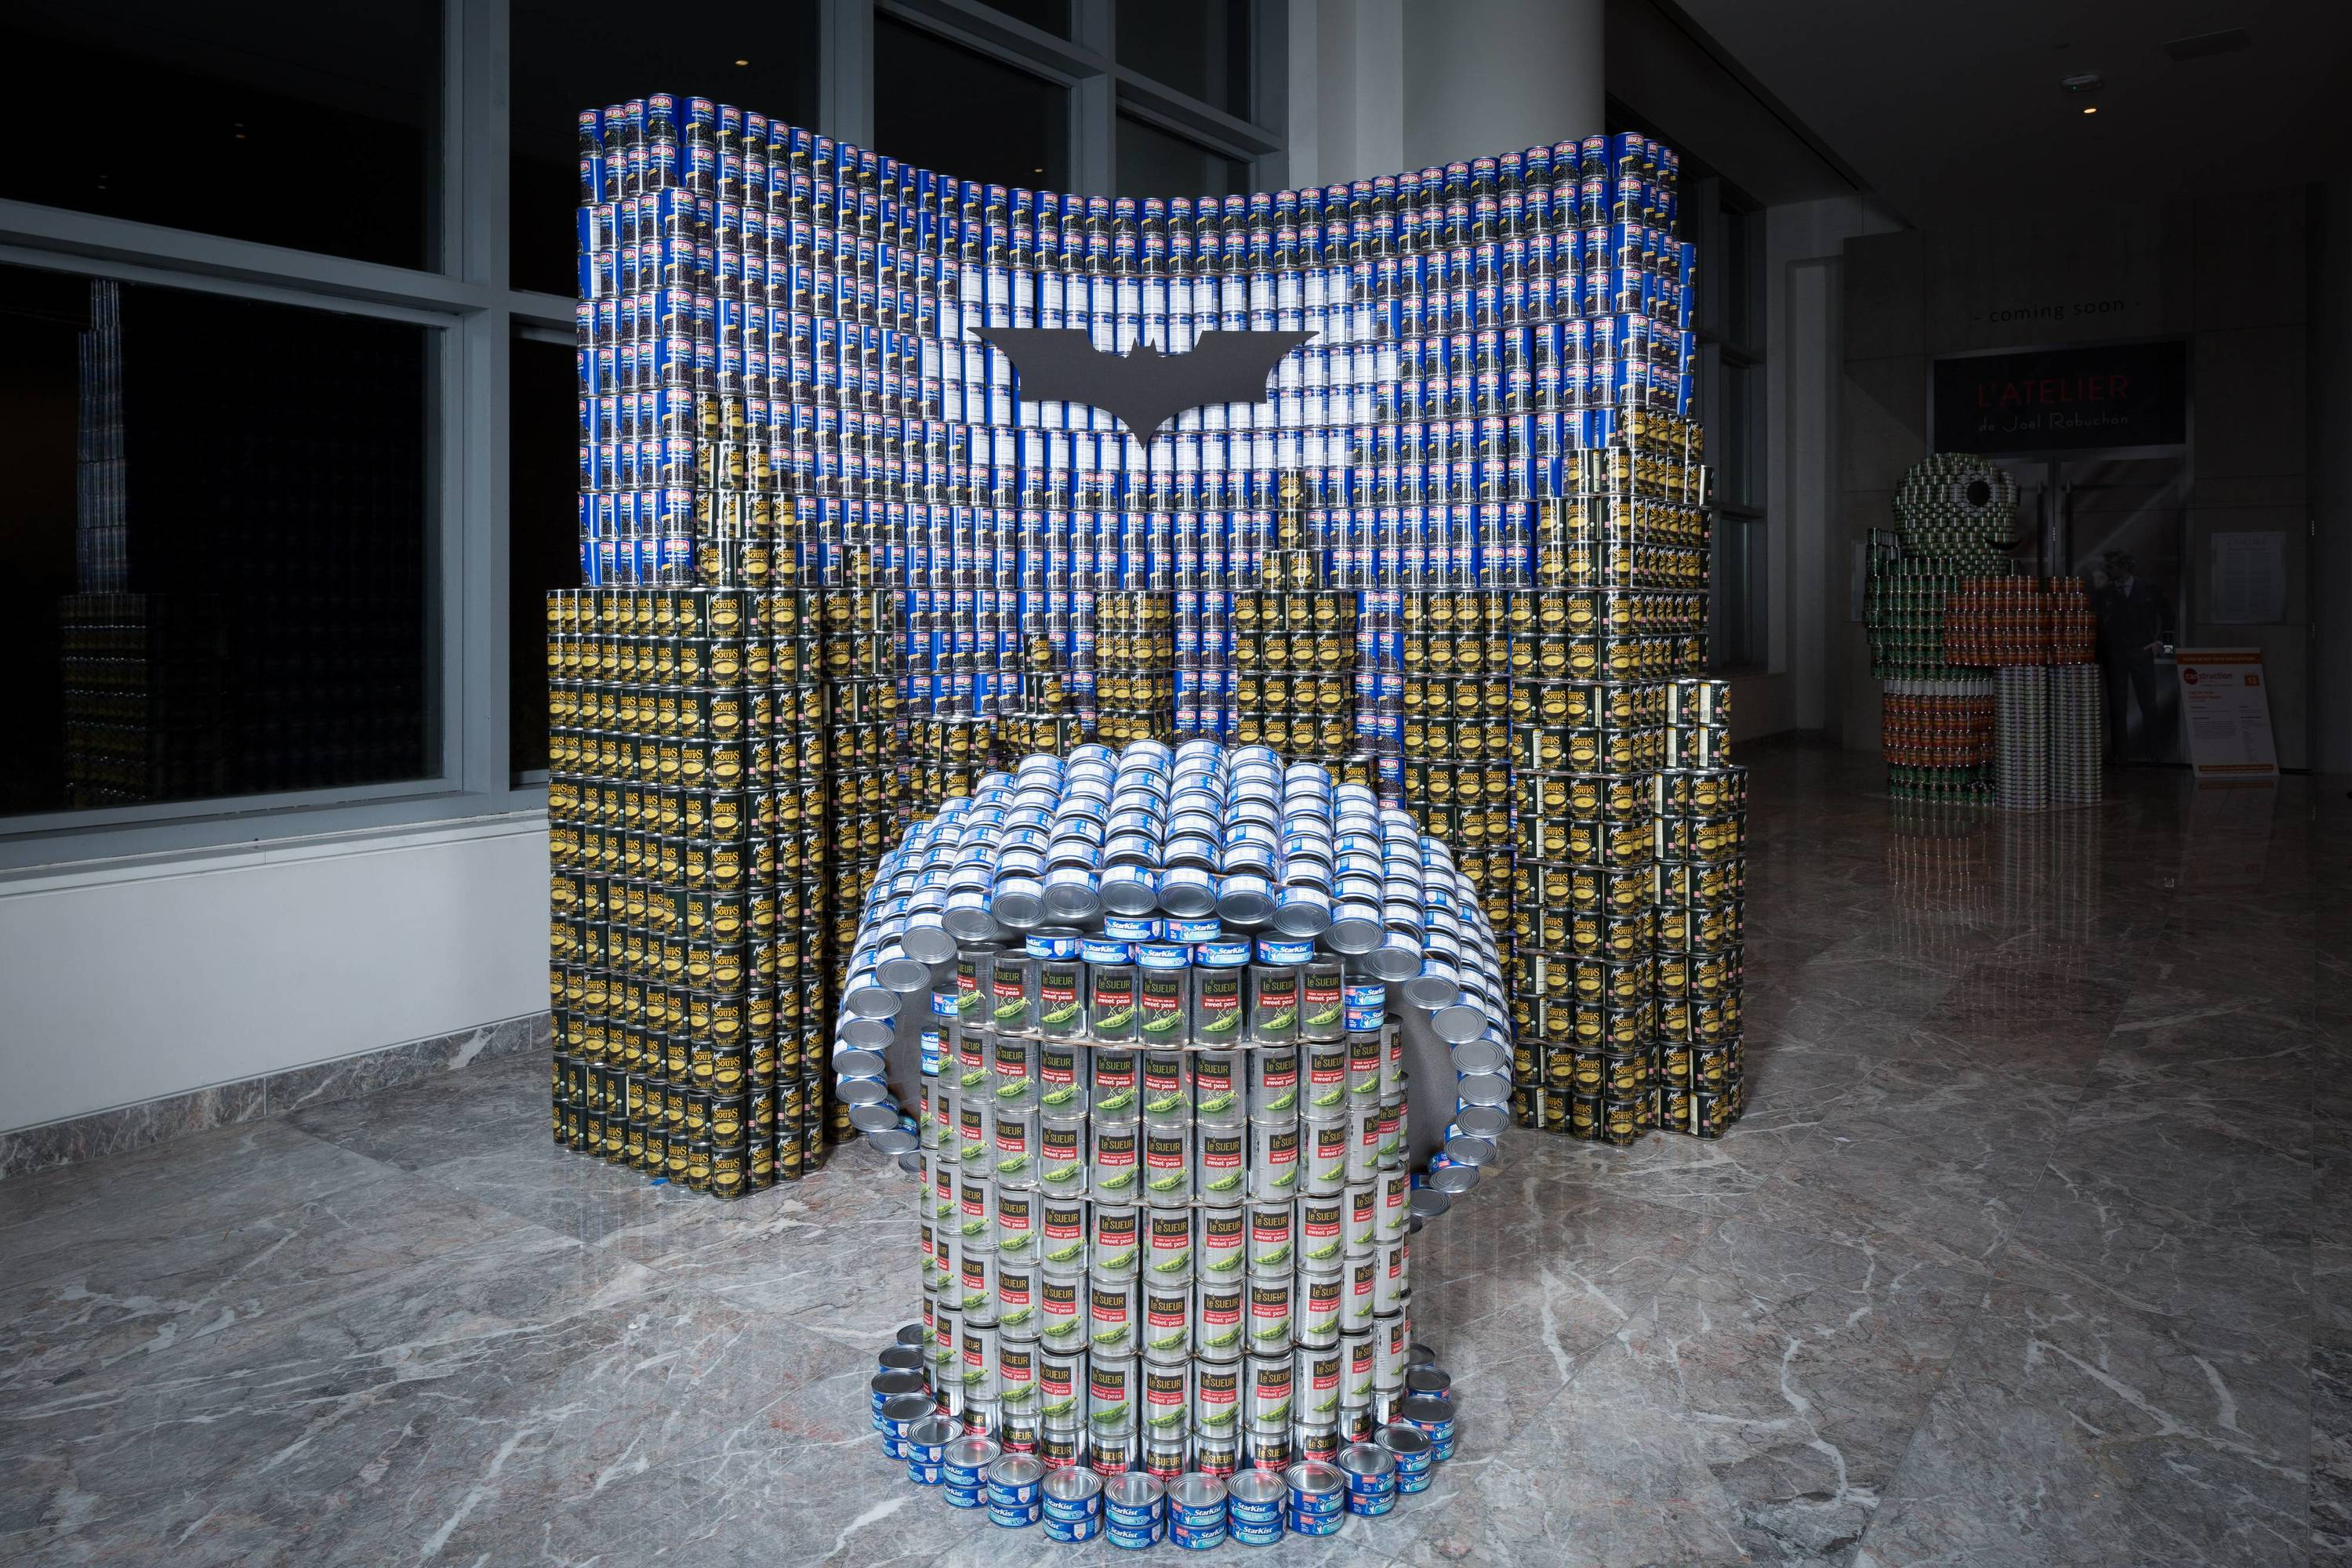 BatCAN: A Signal to End Hunger